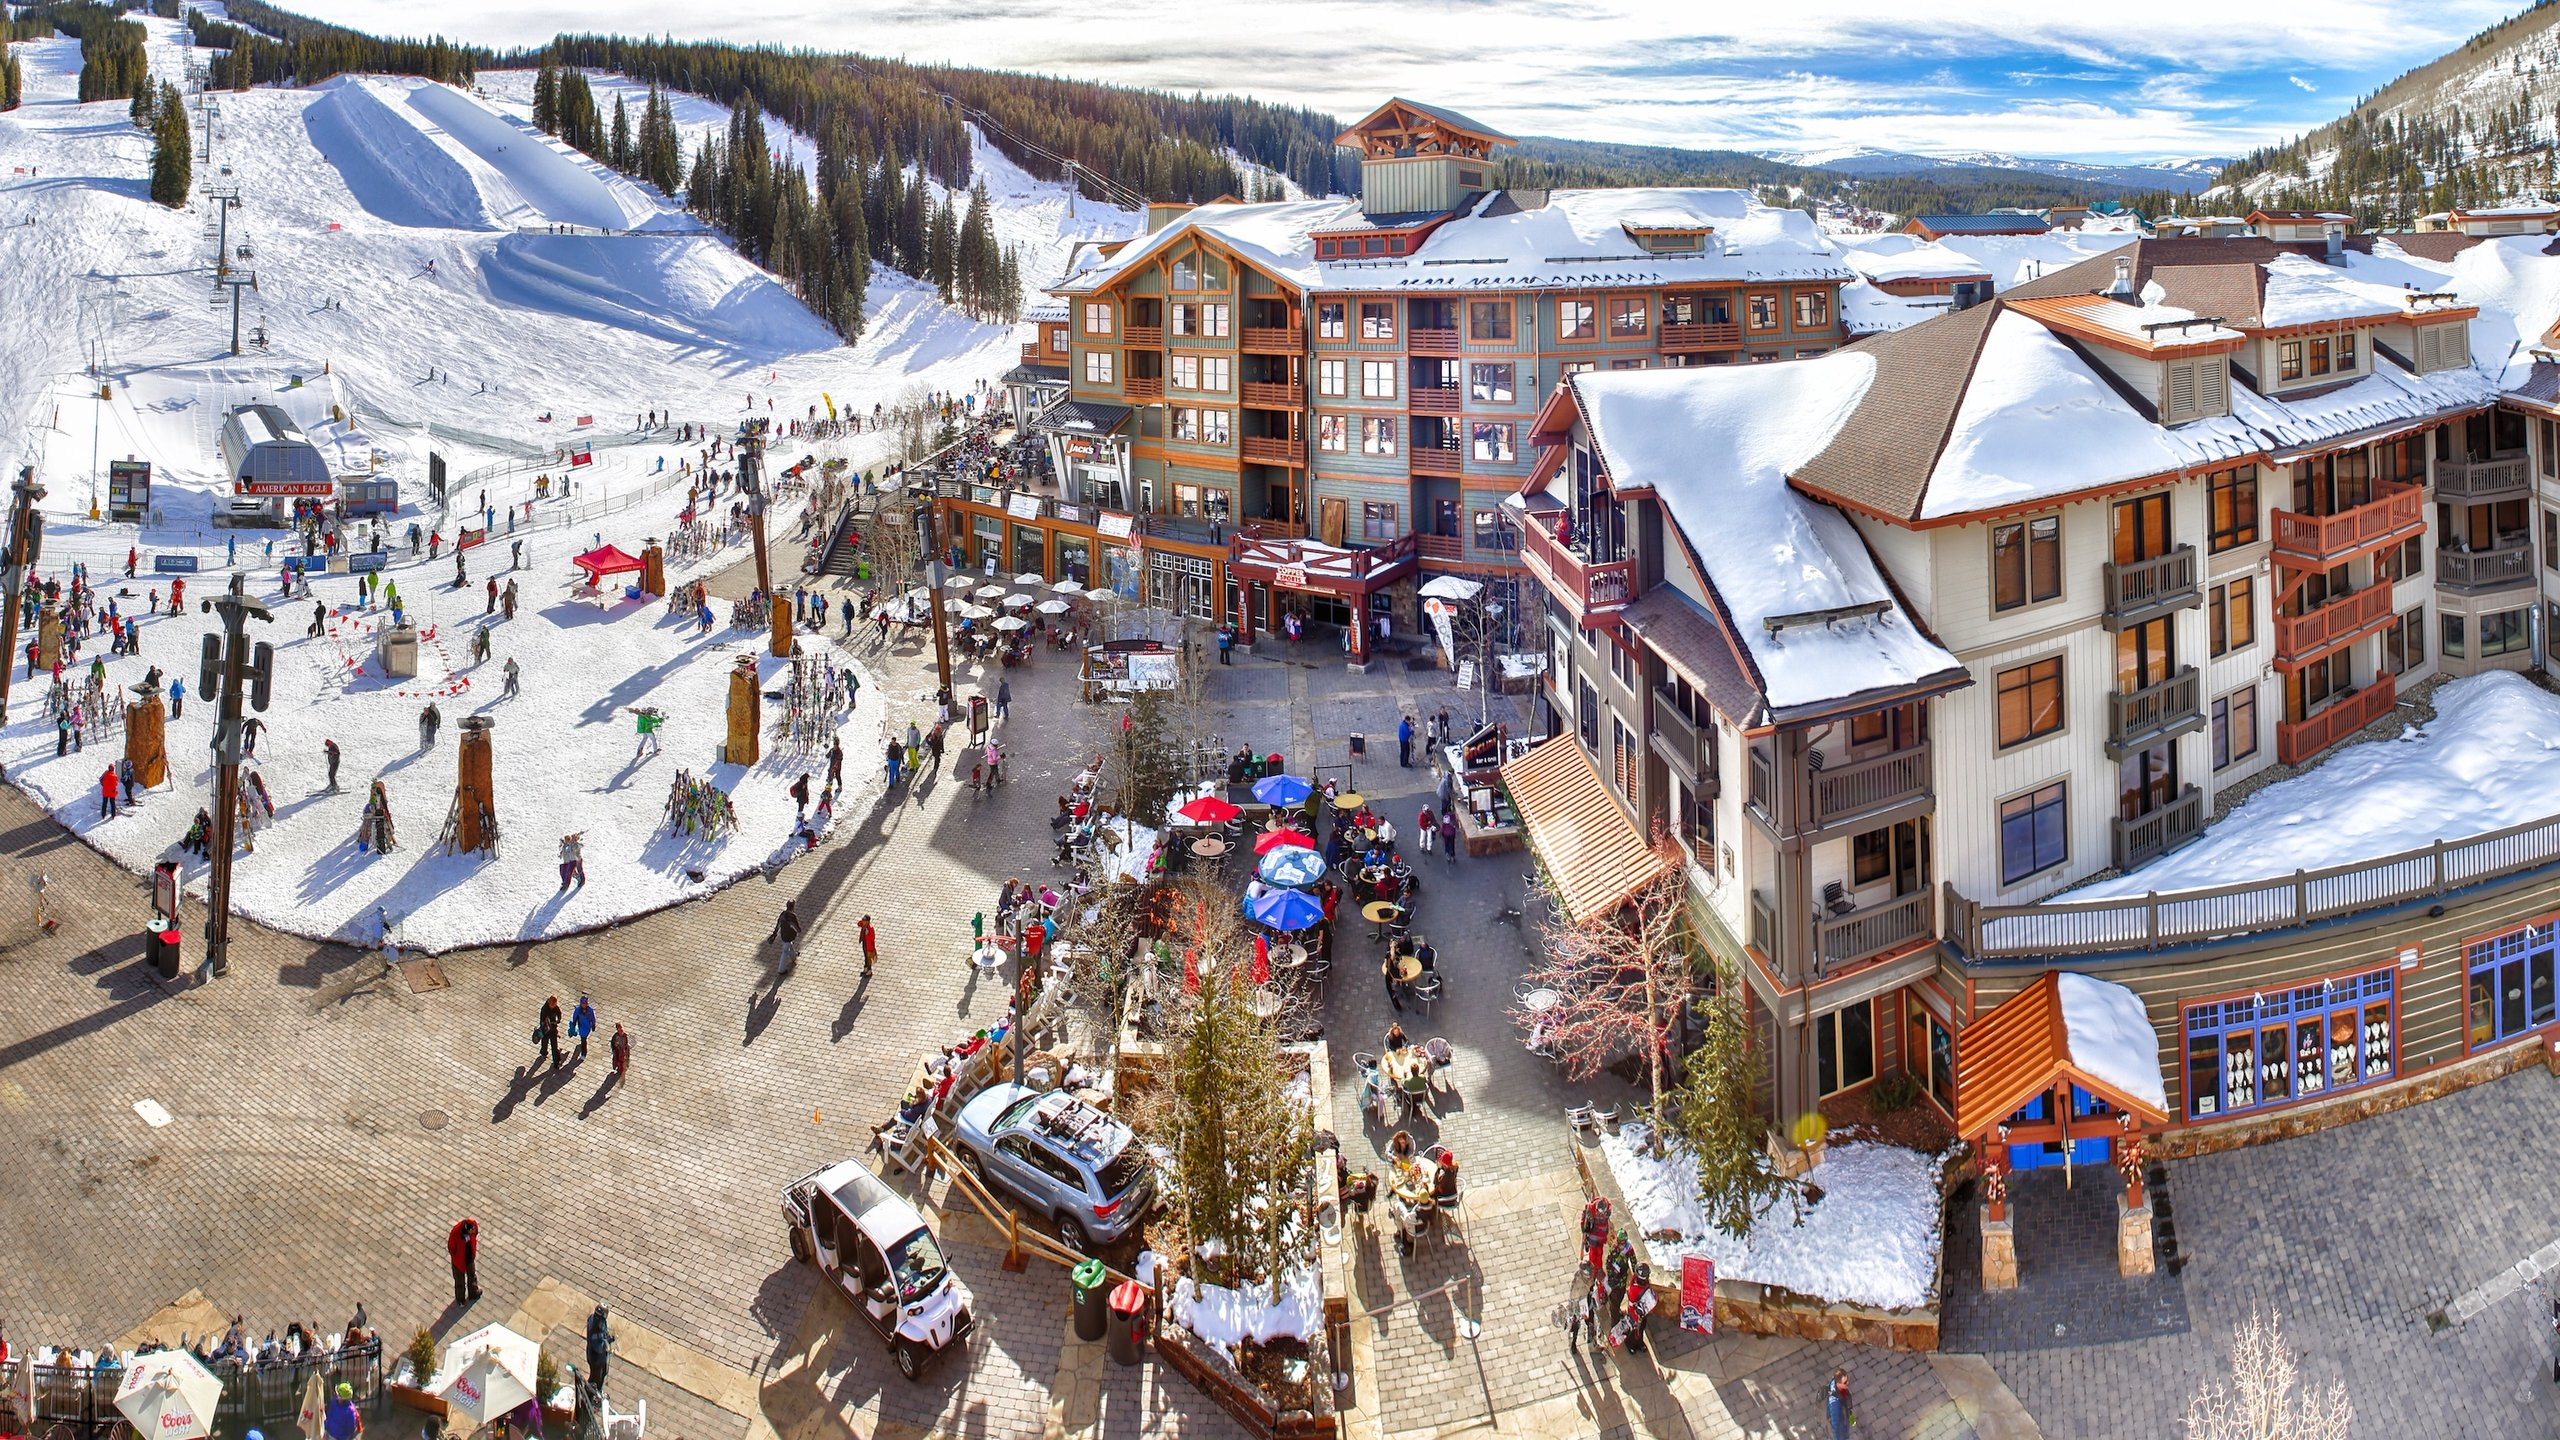 10 Best Hotels Closest to Copper Mountain Ski Resort in